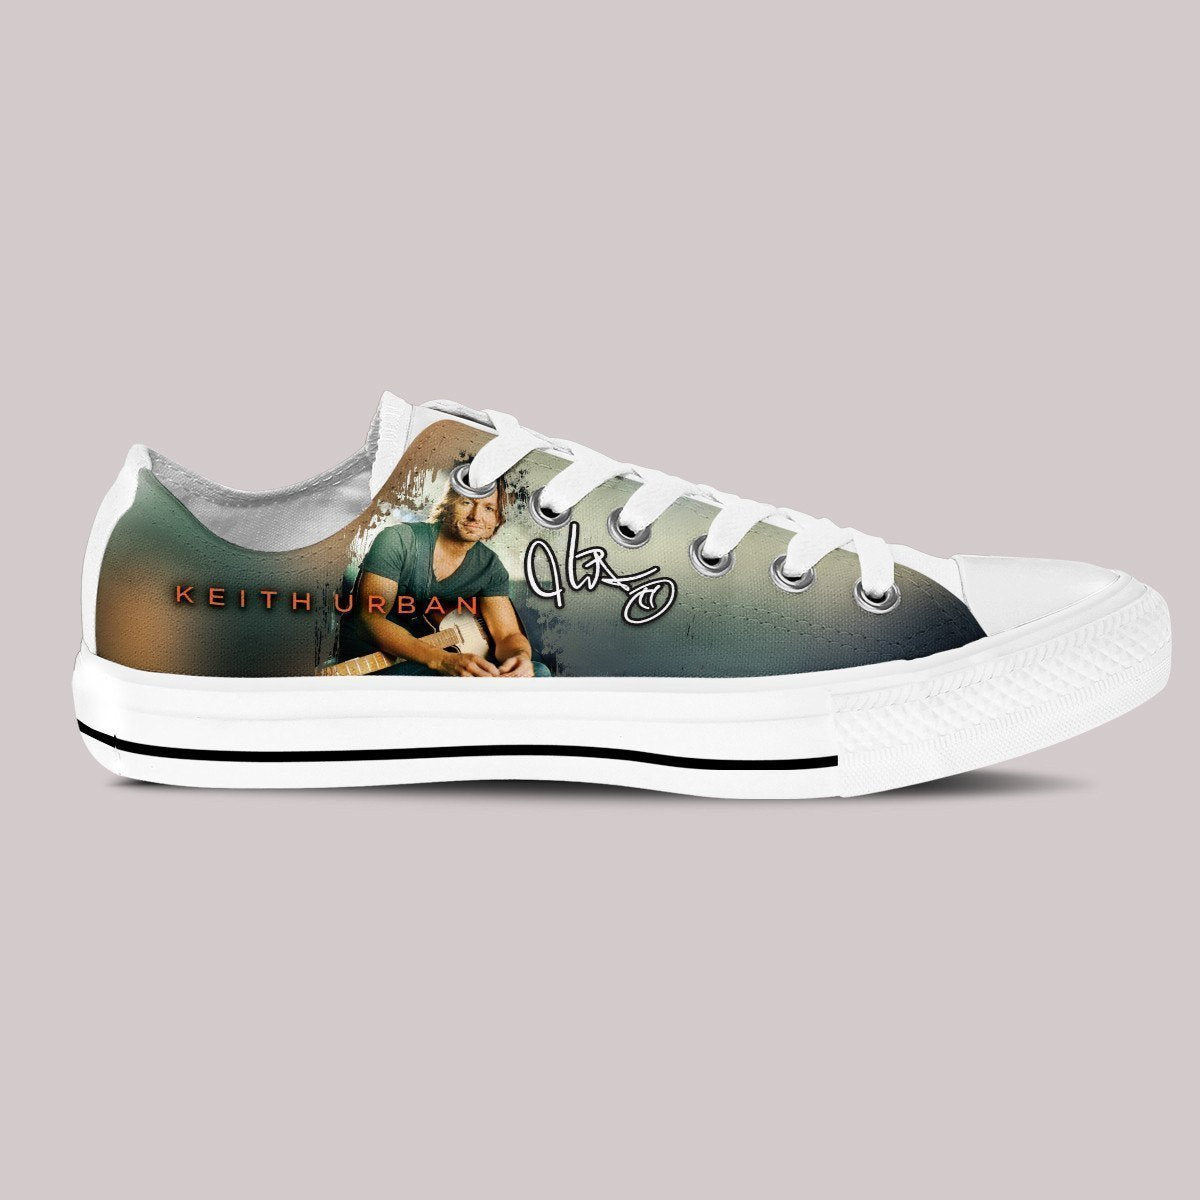 keith urban mens low cut sneakers